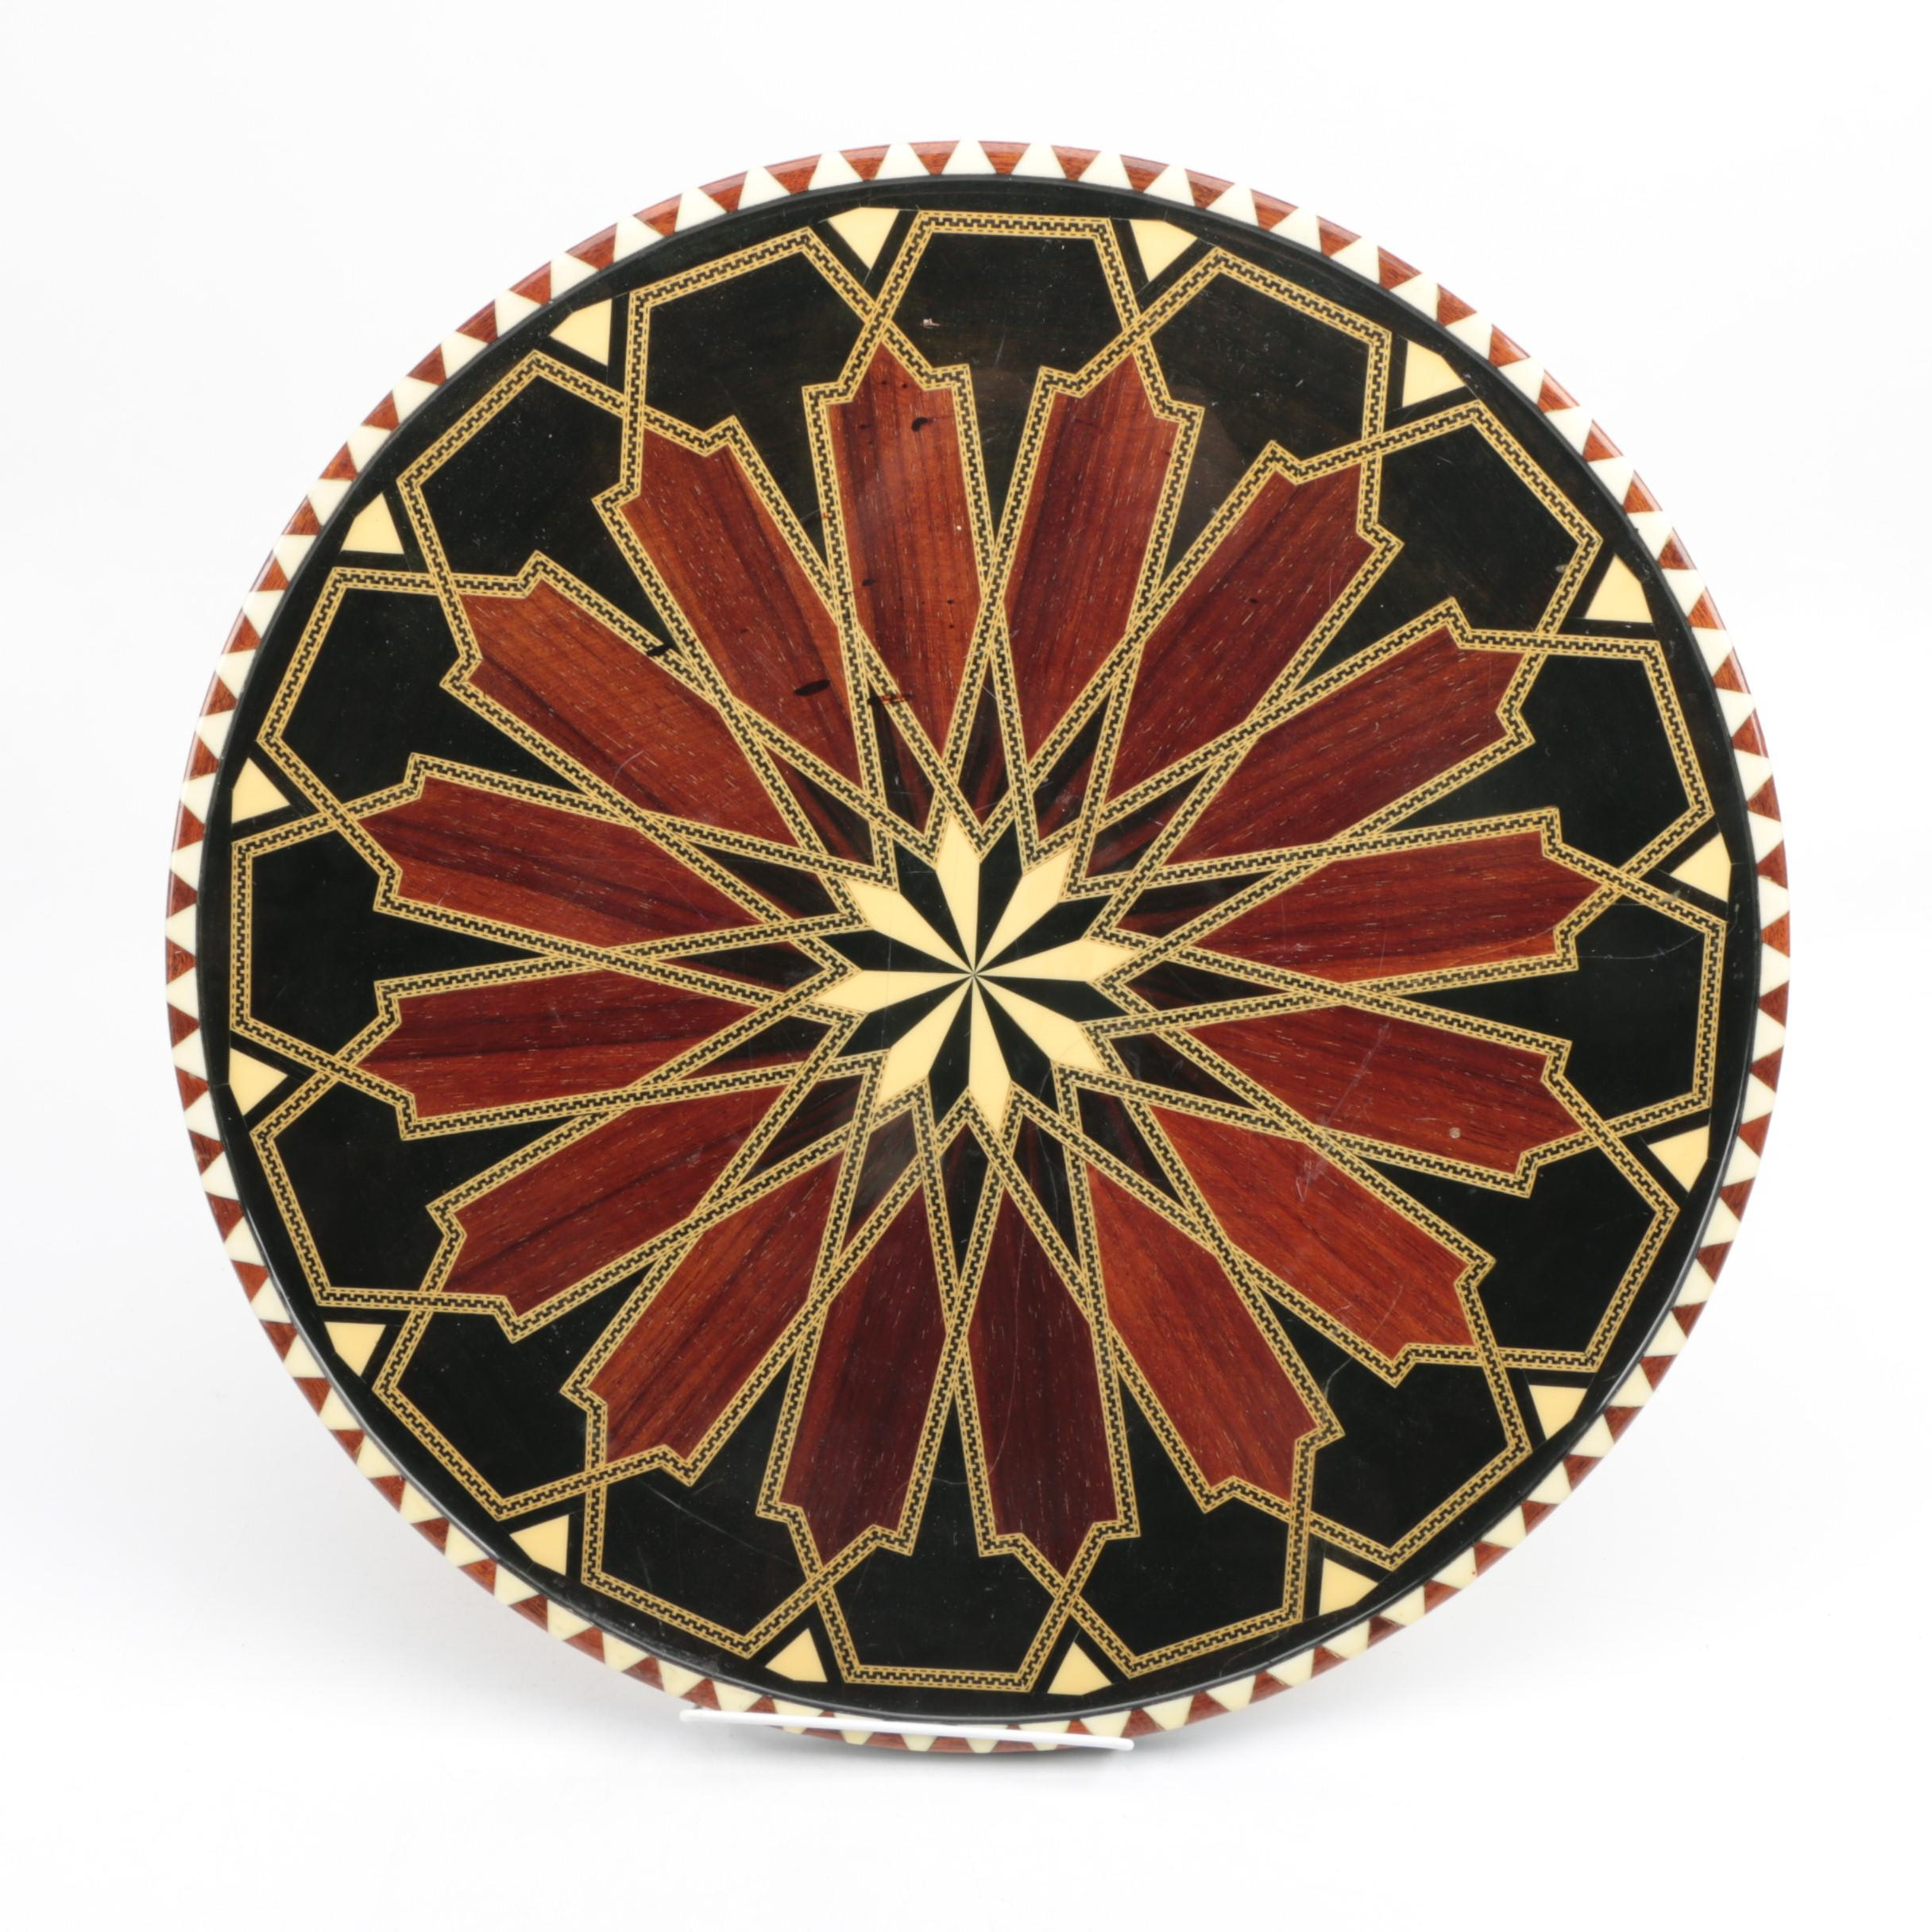 Geometric Inlaid Round Table Top With Rosewood